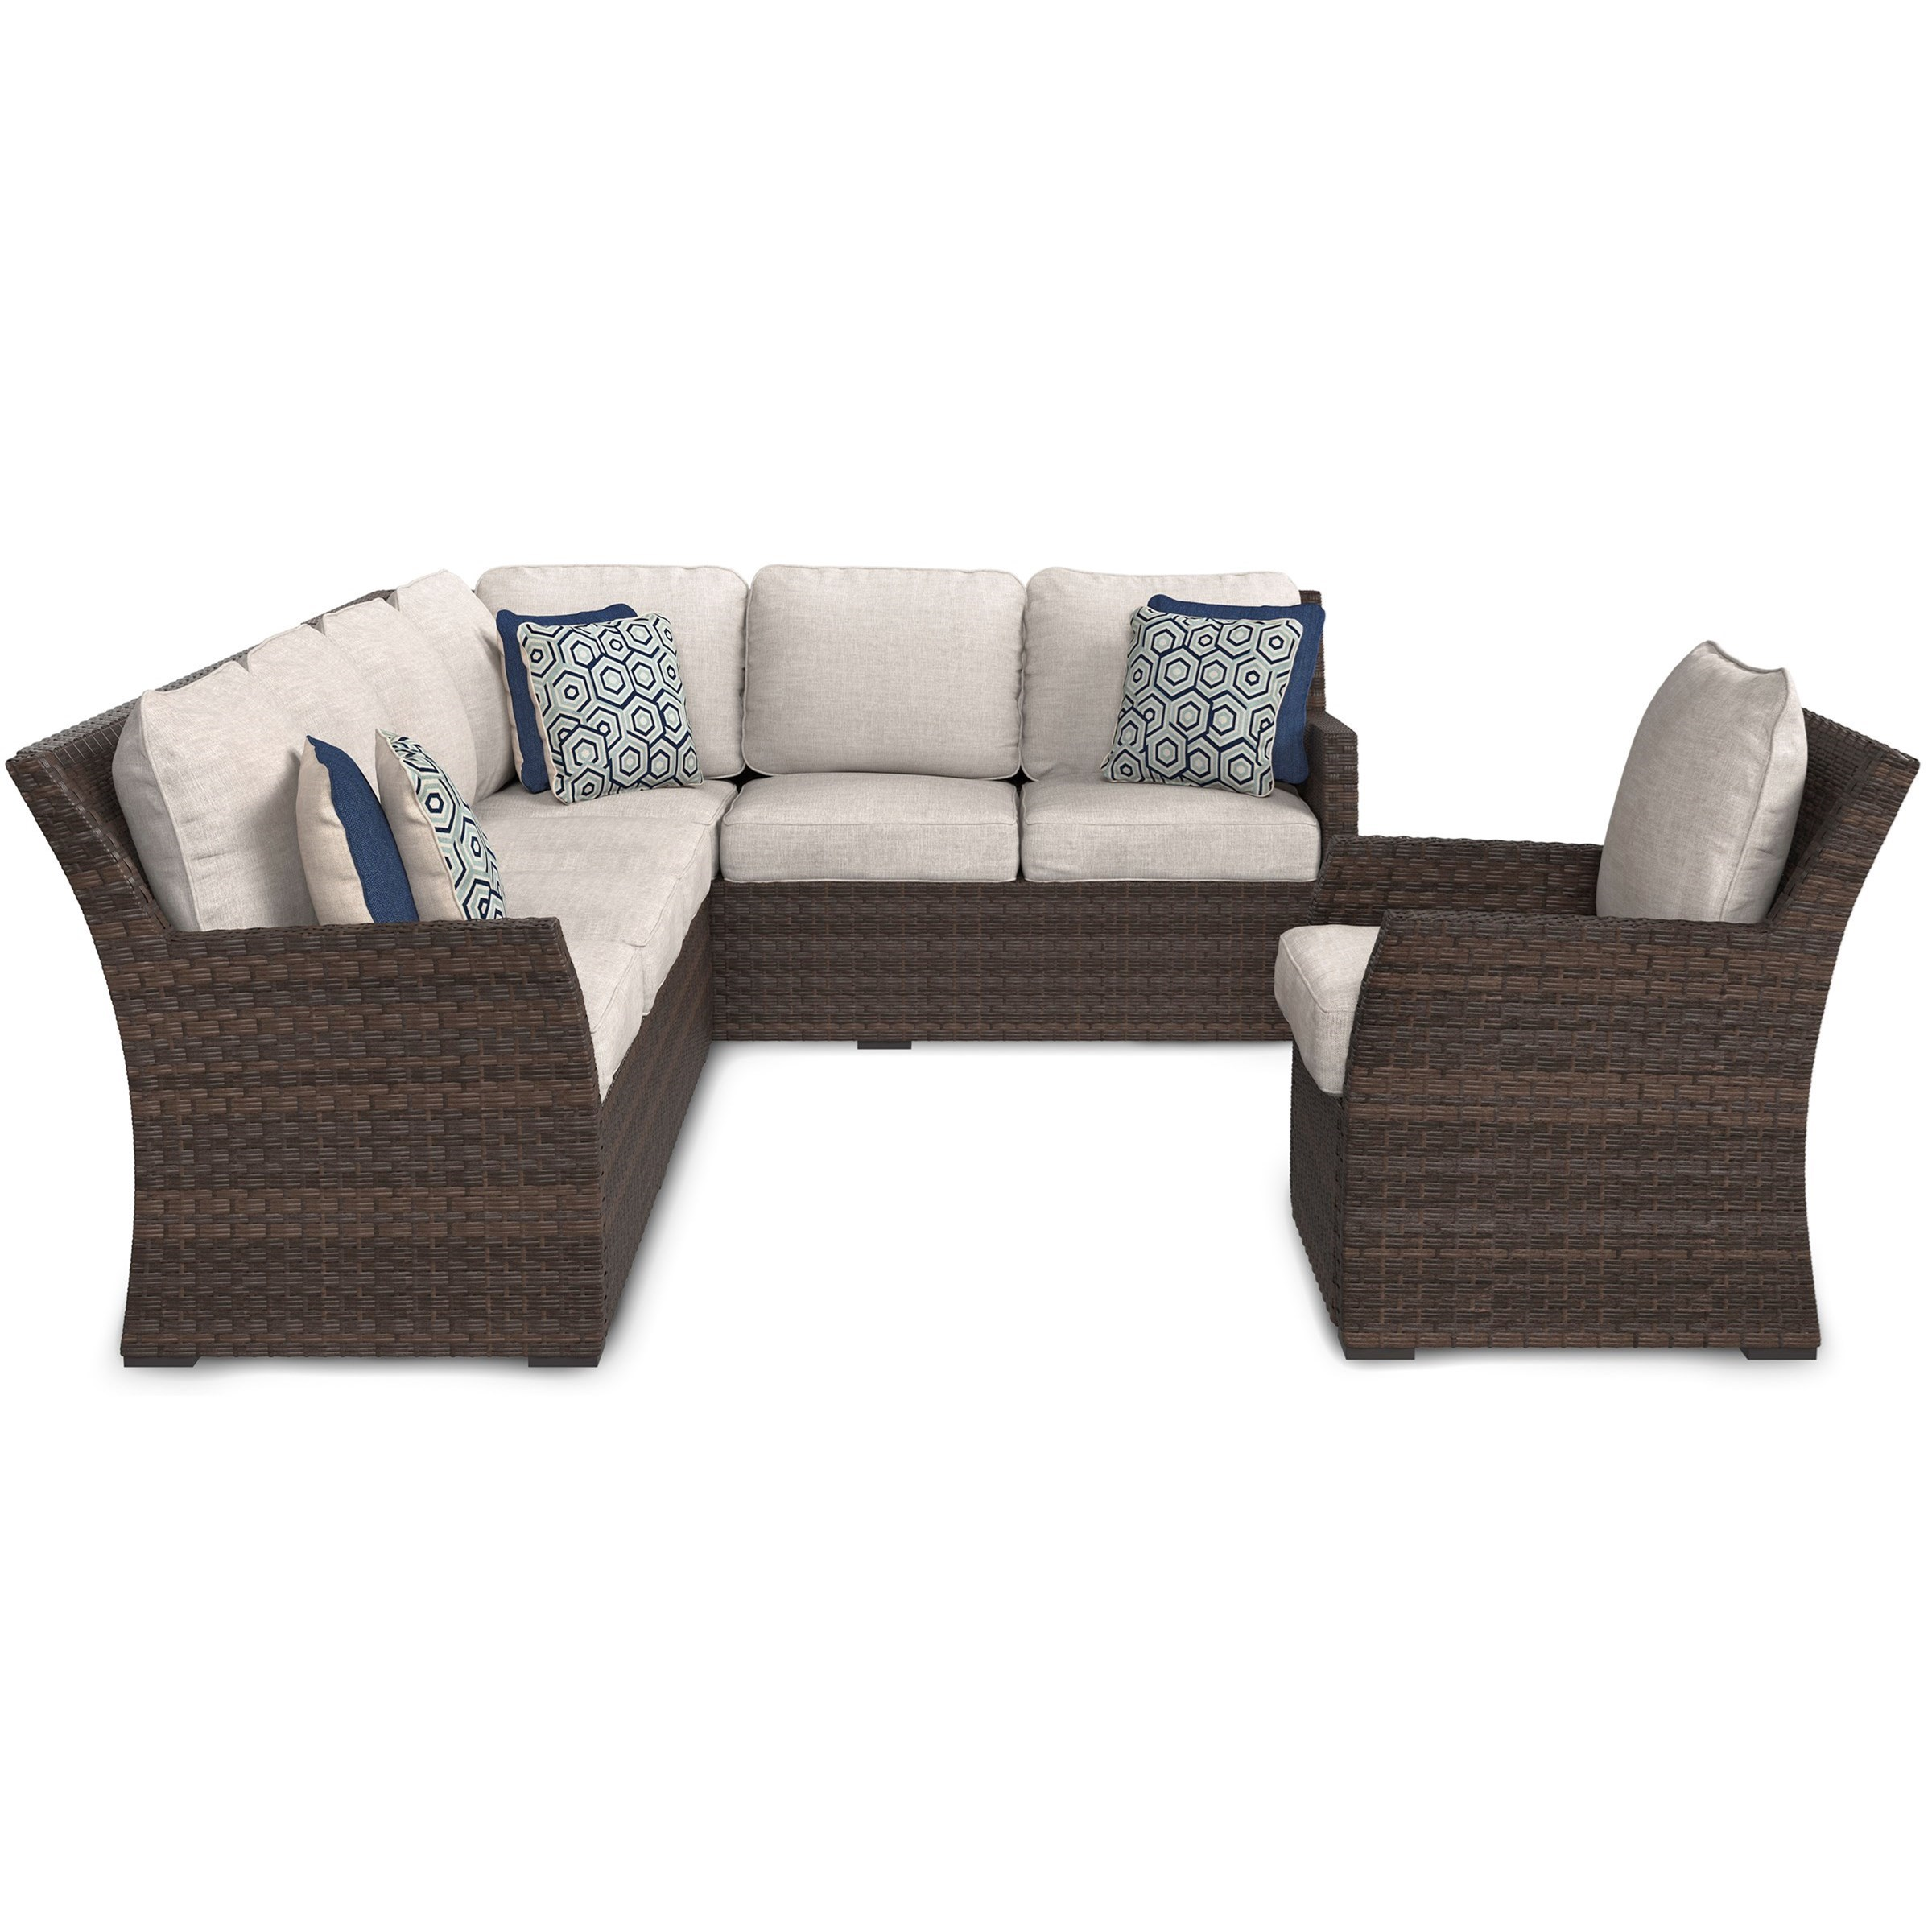 outdoor sofa lounge furniture sofas modernos baratos sandpiper 2 piece sectional and chair set